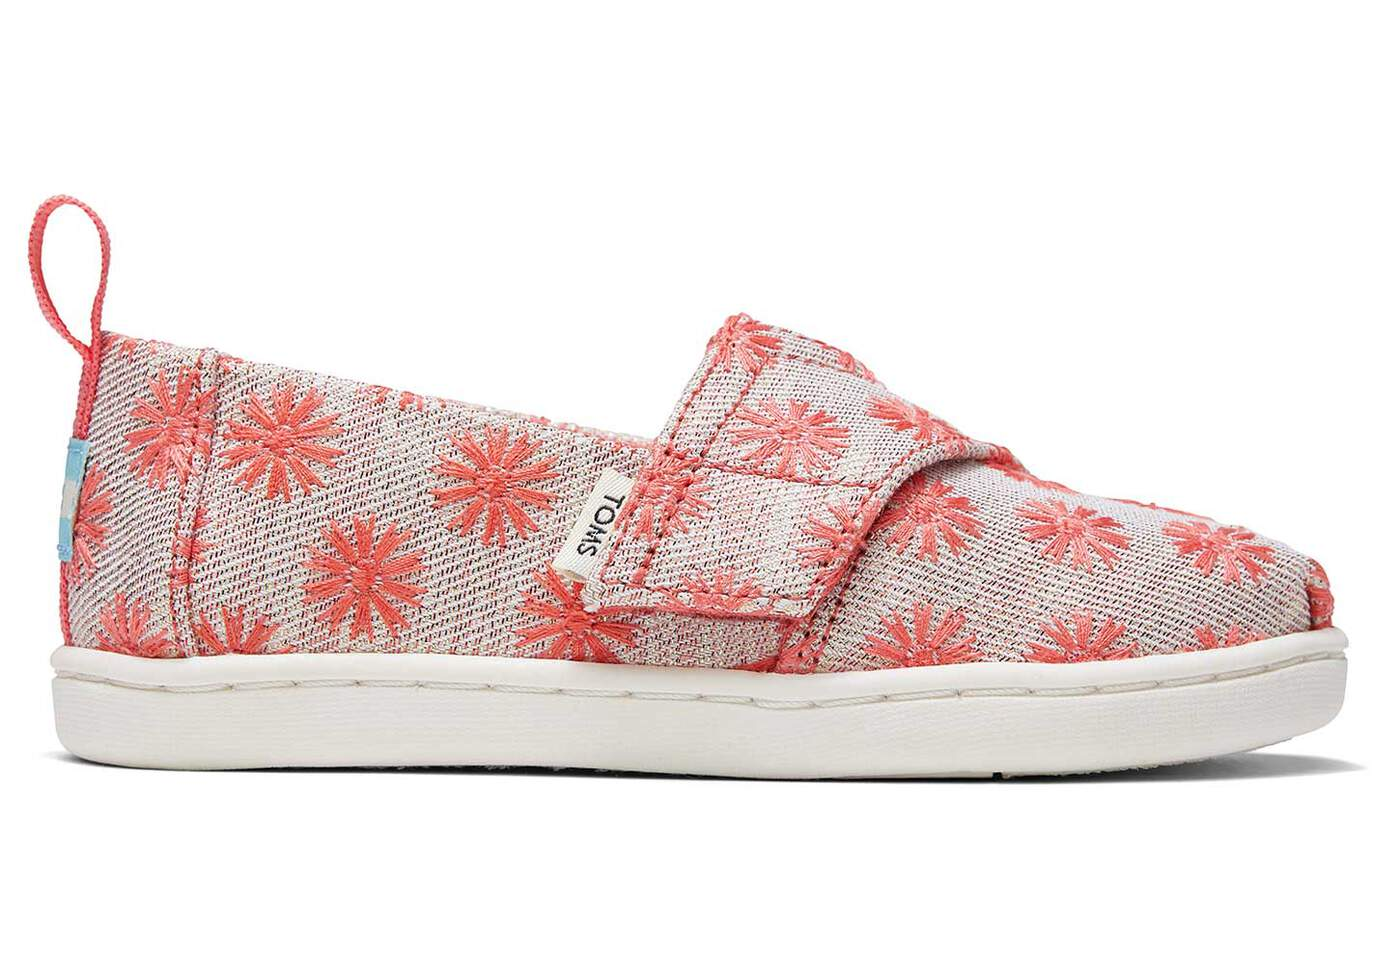 TOMS Shoes: Extra 15% off sitewide or $20 off $75